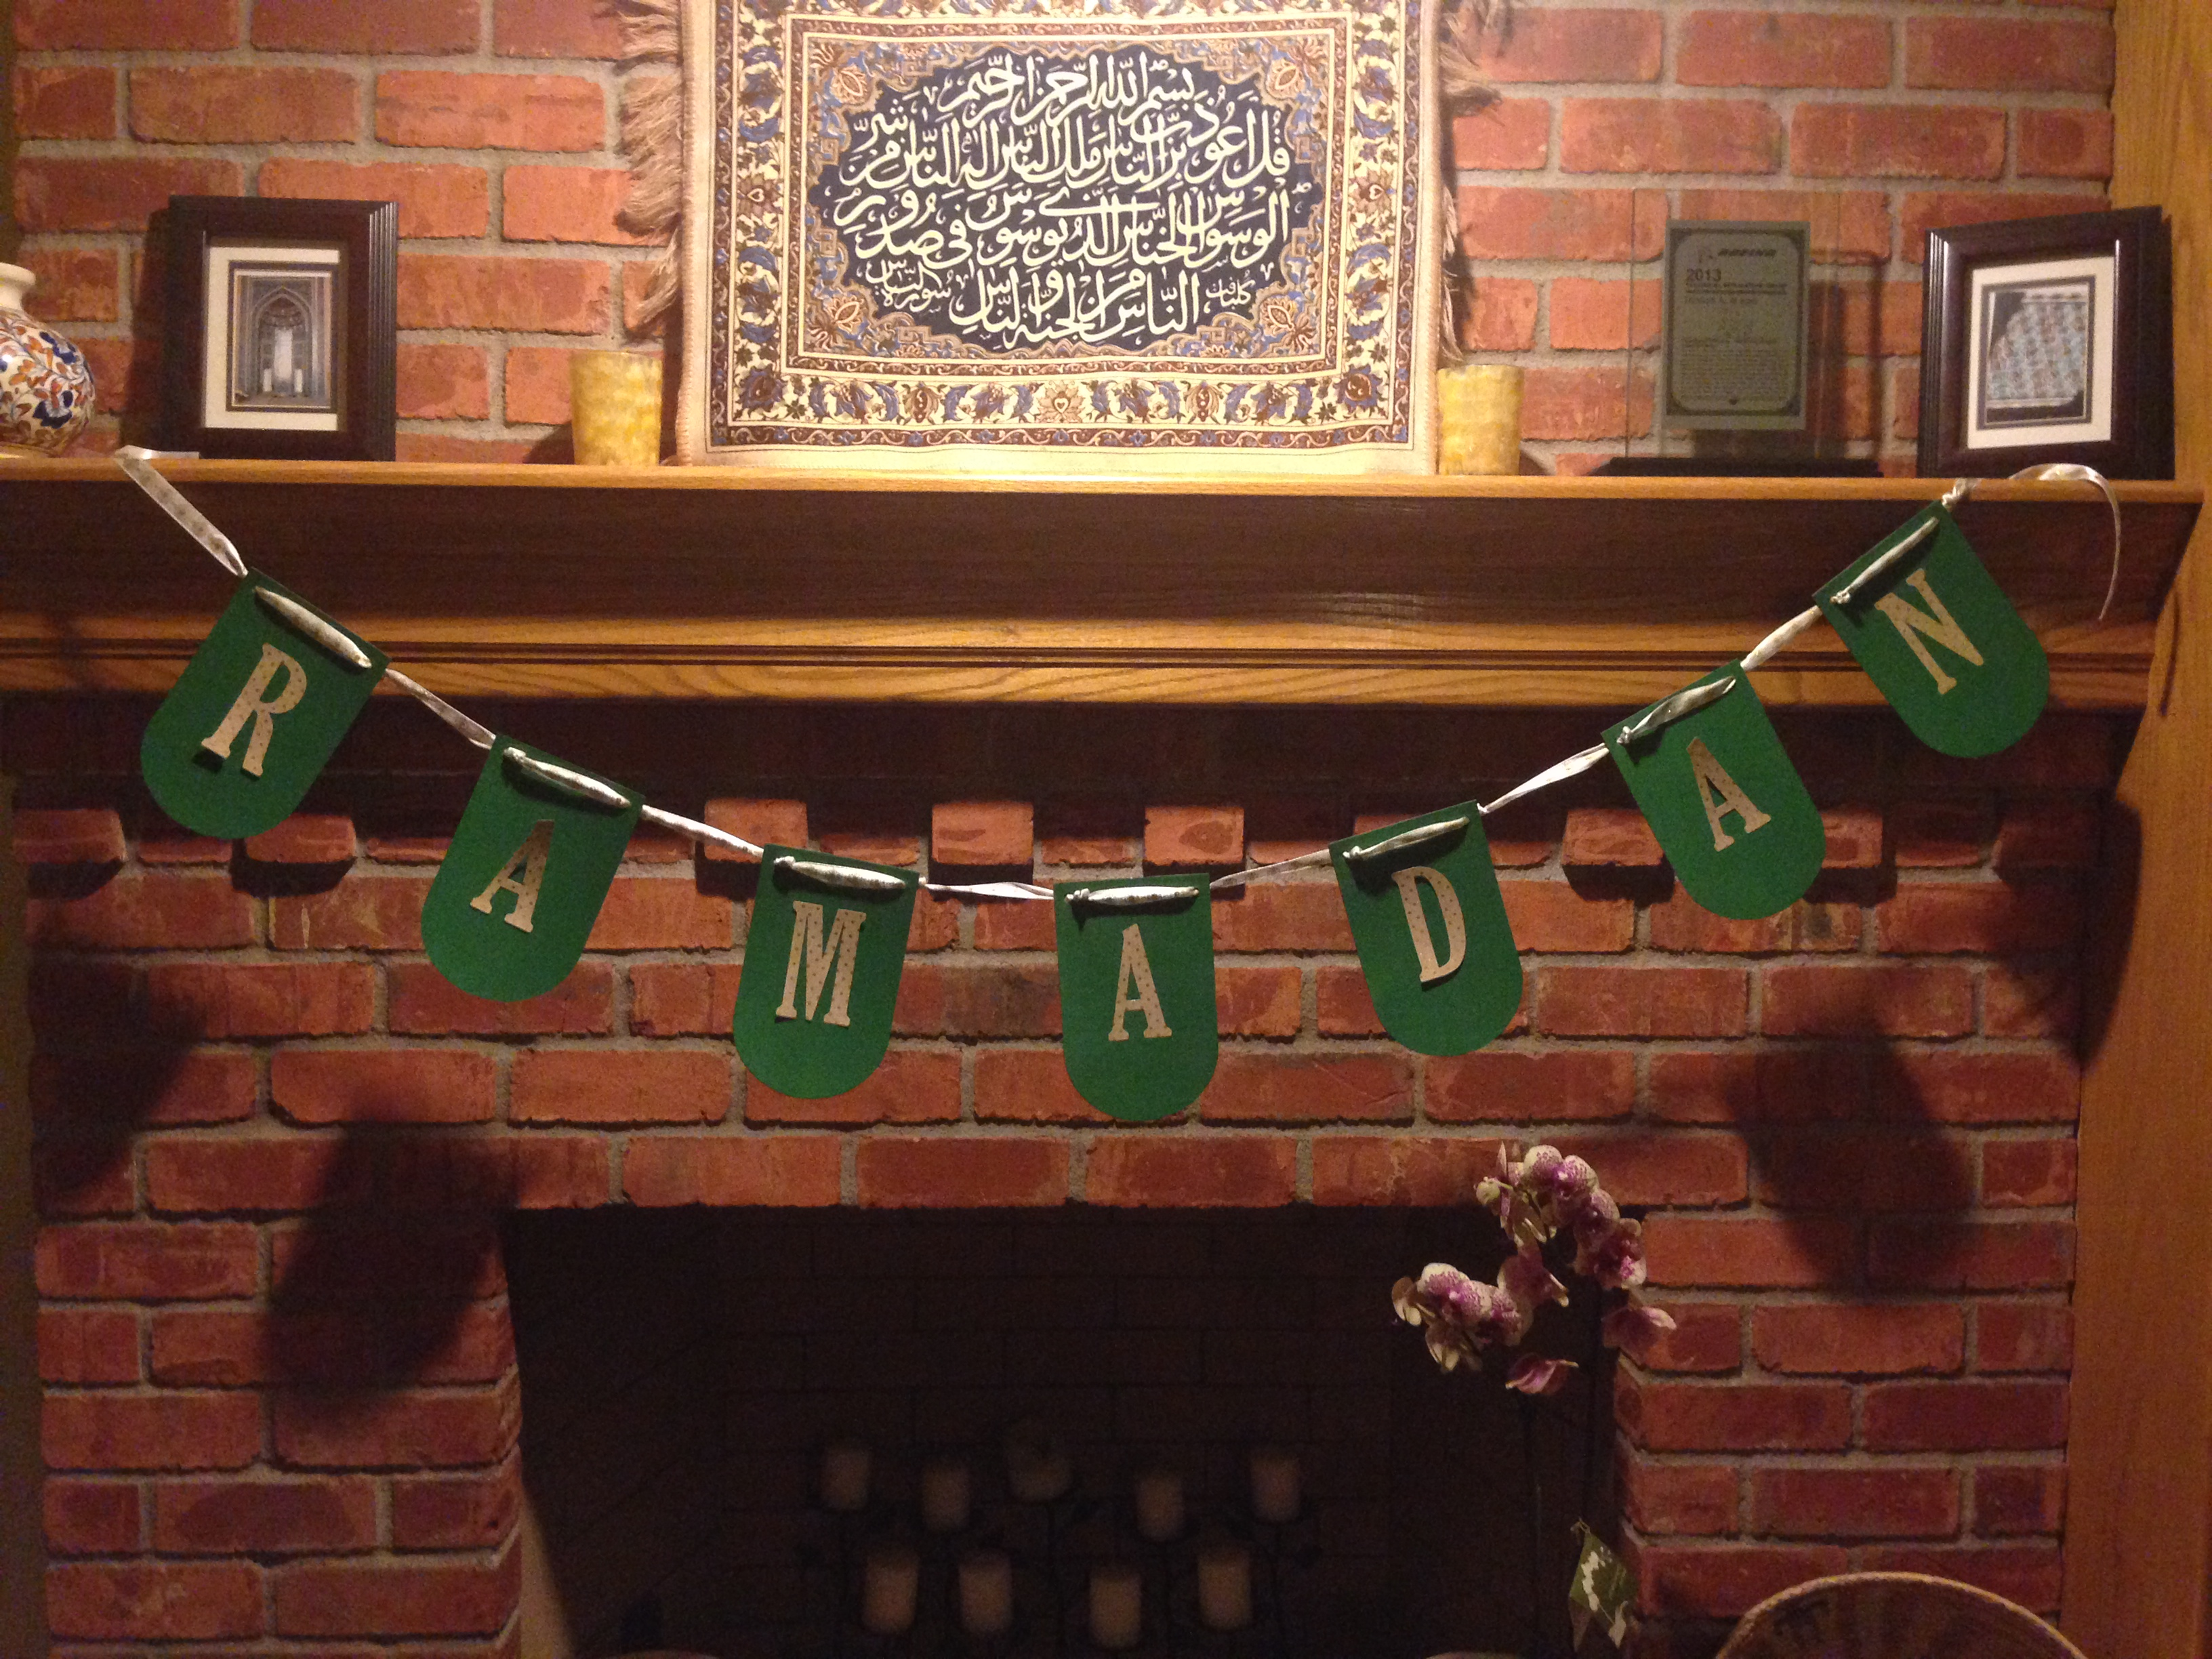 Caption: Ramadan decorations at the Al-Sadi home, Credit: Amina Al-Sadi